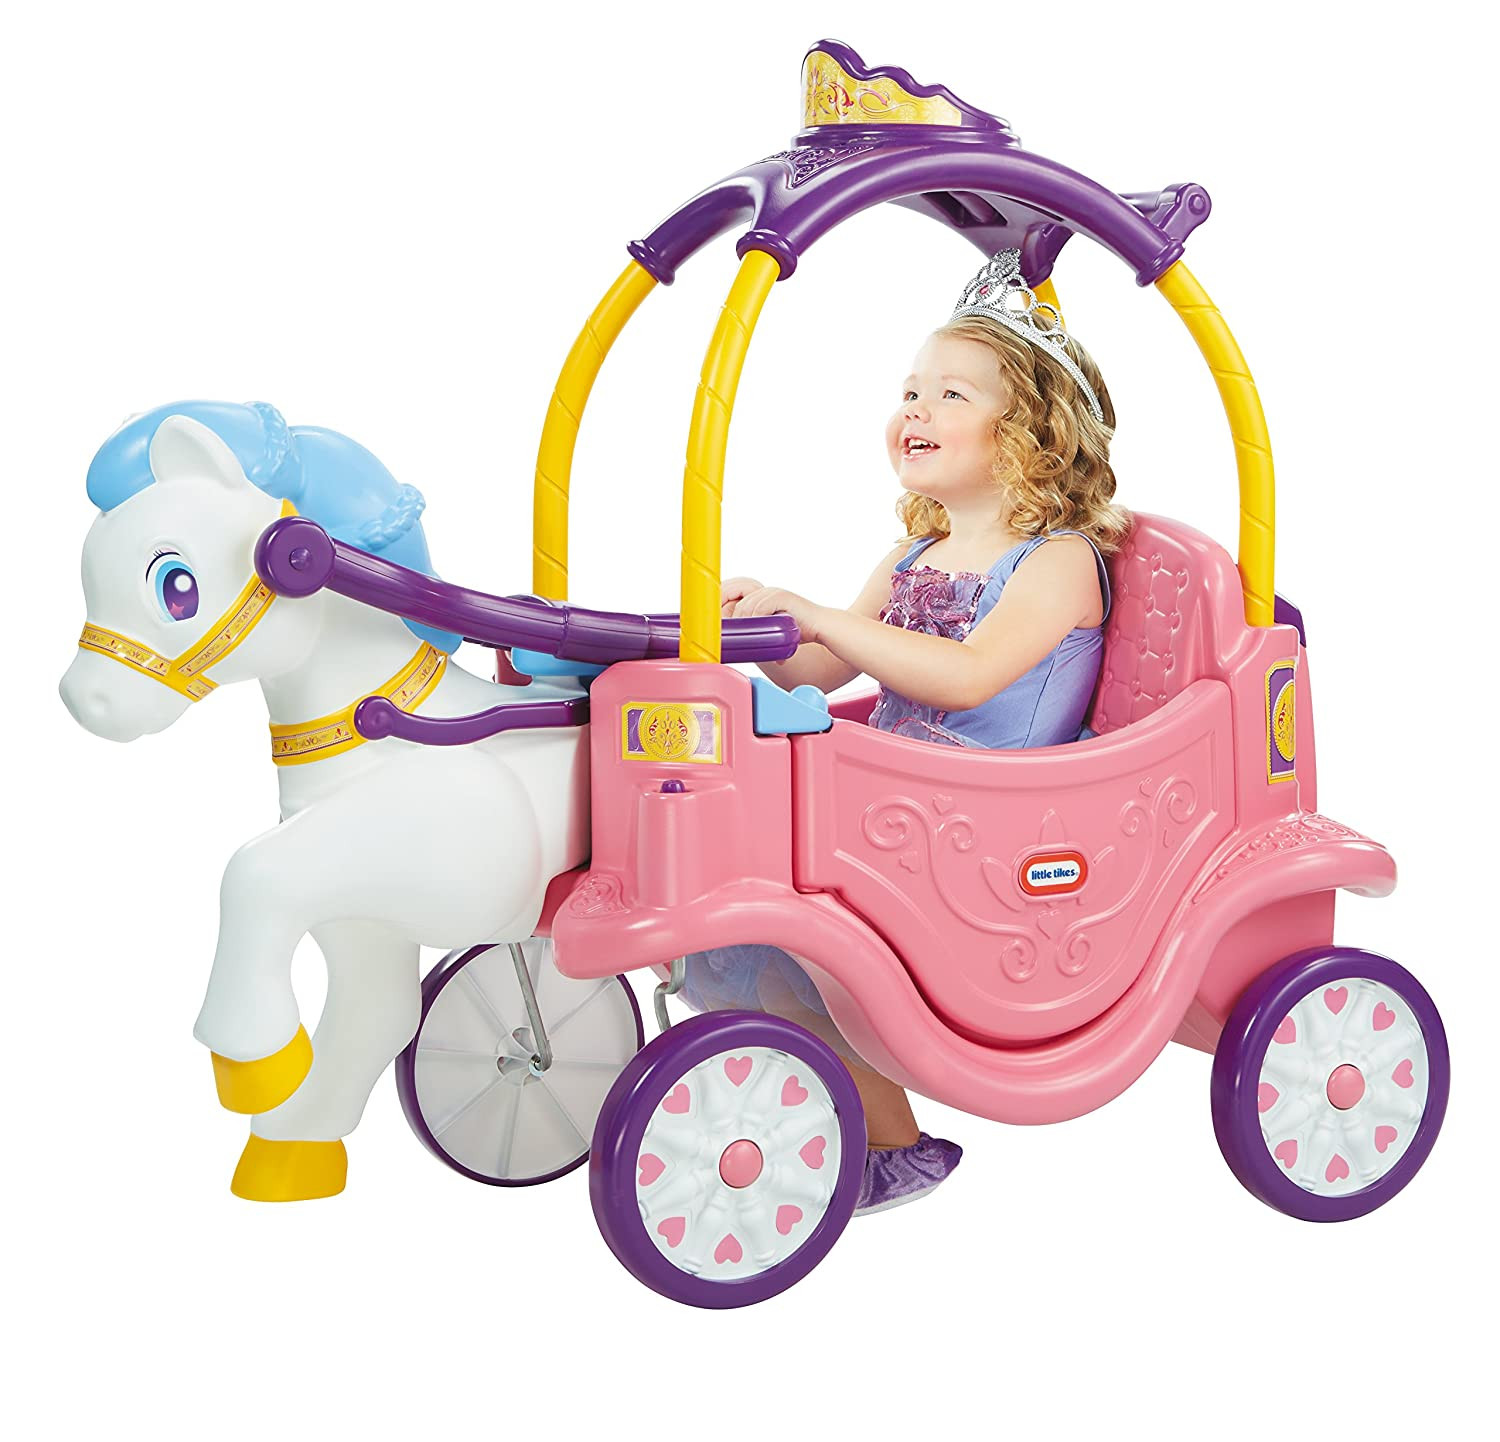 Amazon Little Tikes Princess Horse & Carriage Toys & Games